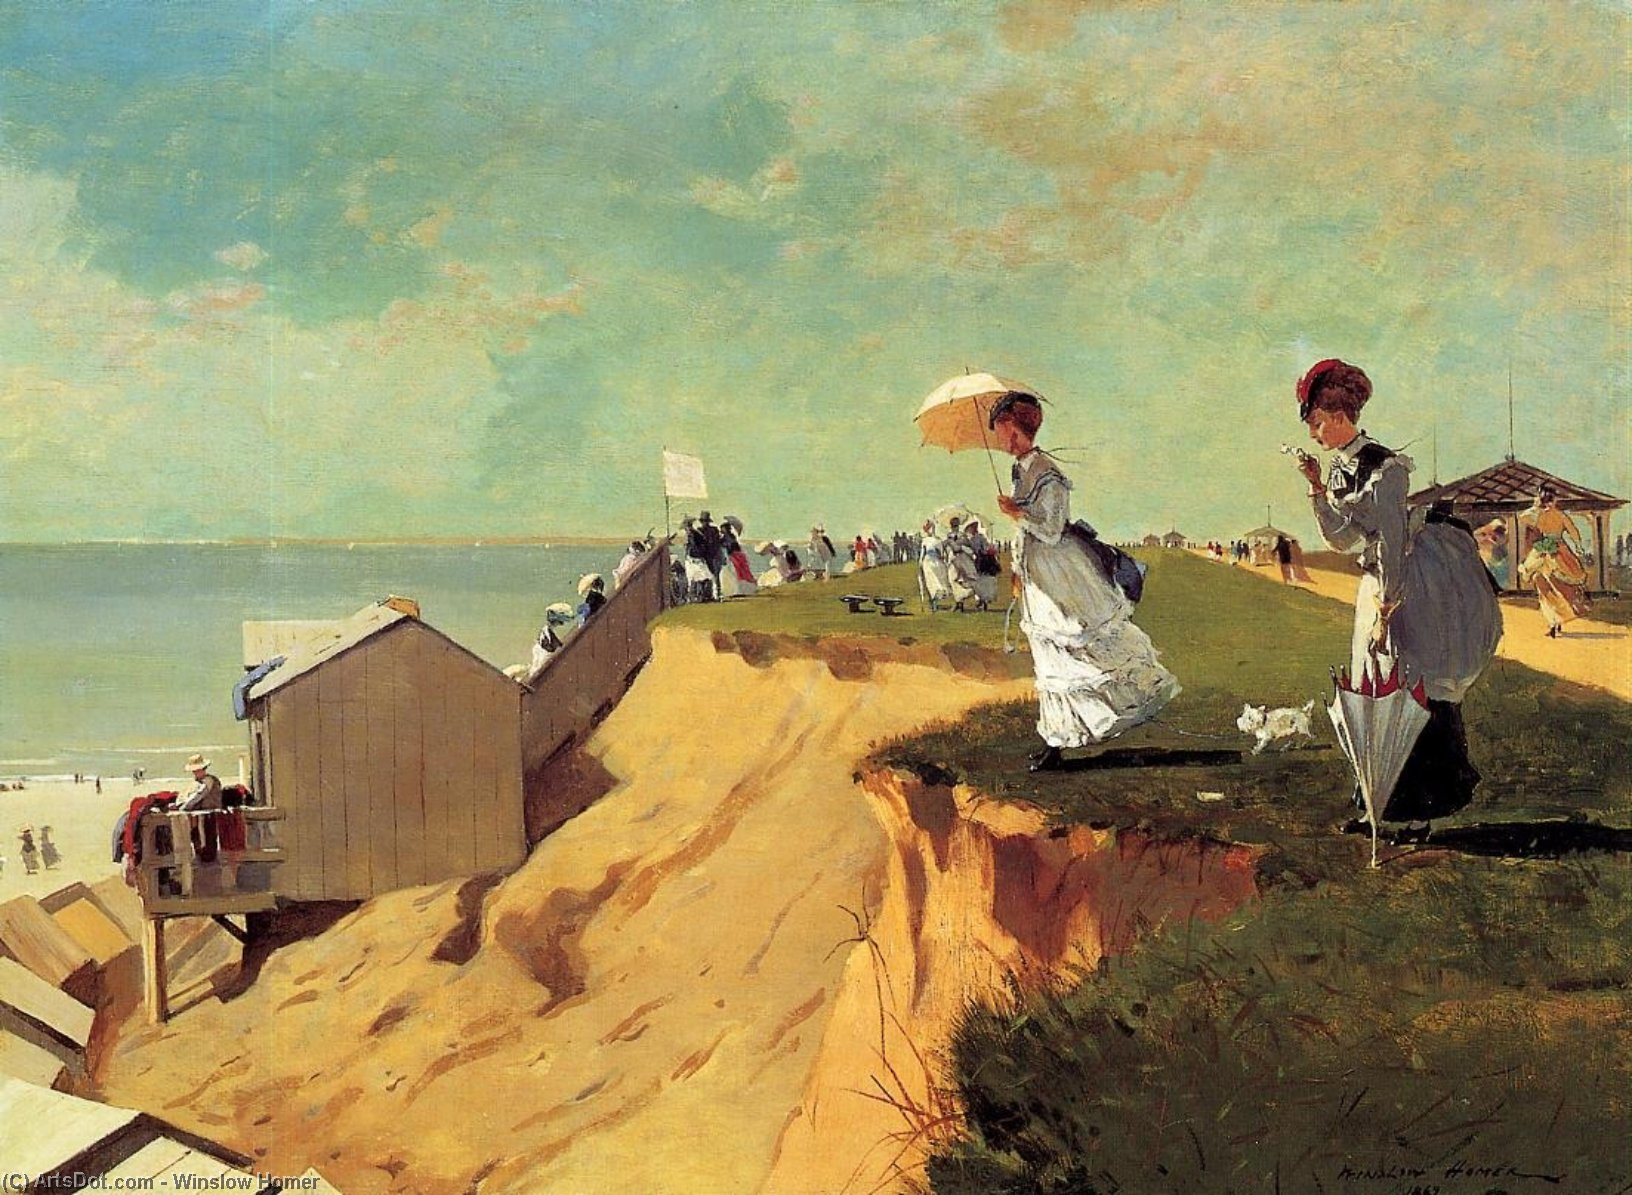 longue branche , new jersey, 1869 de Winslow Homer (1836-1910, United States) | Reproductions D'art Winslow Homer | ArtsDot.com